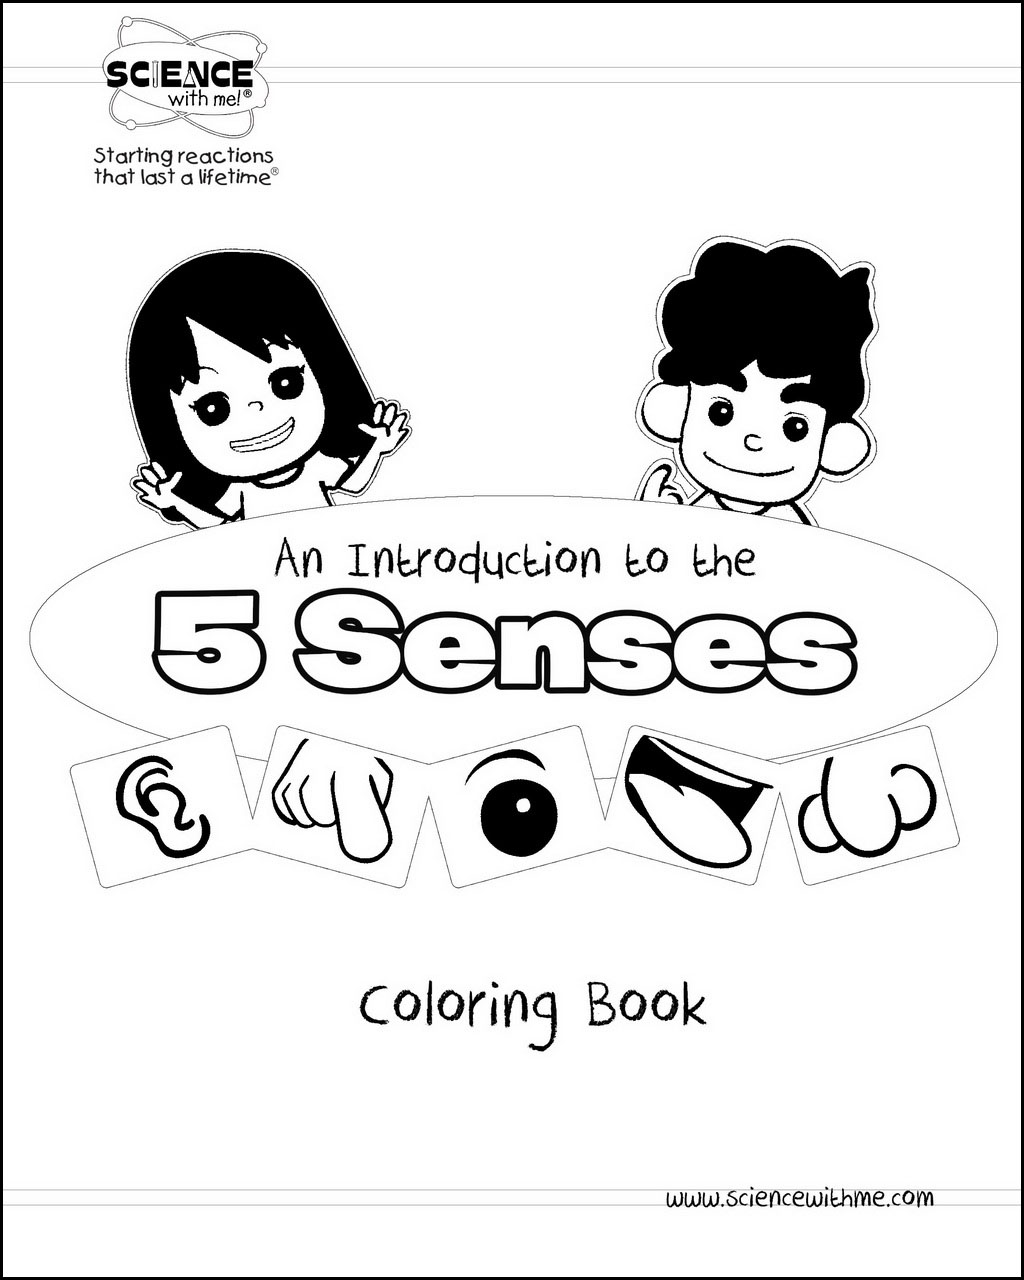 5-Senses Coloring Book